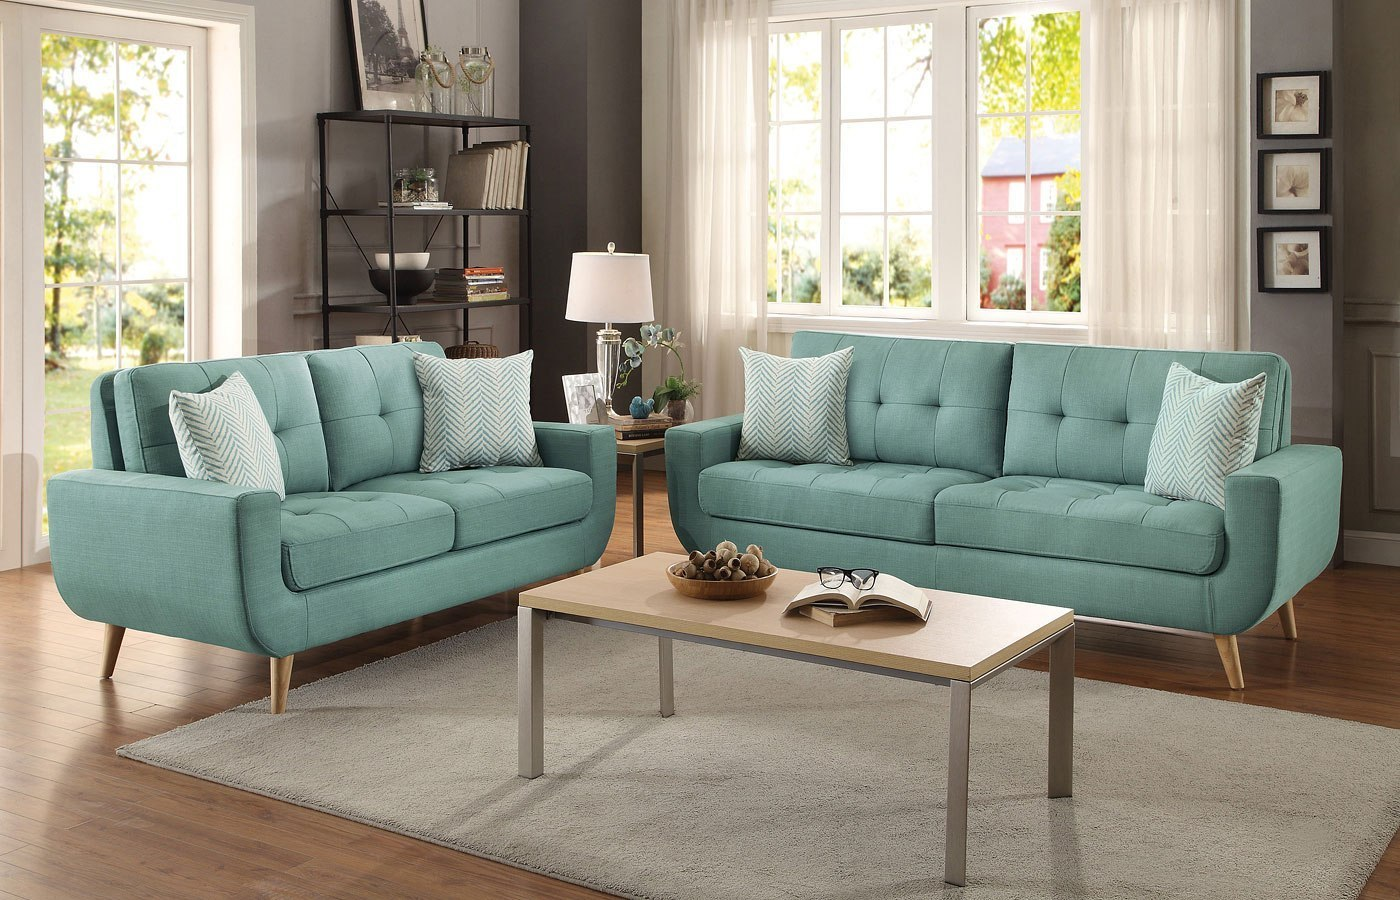 Marvelous Deryn Living Room Set Teal Download Free Architecture Designs Xaembritishbridgeorg